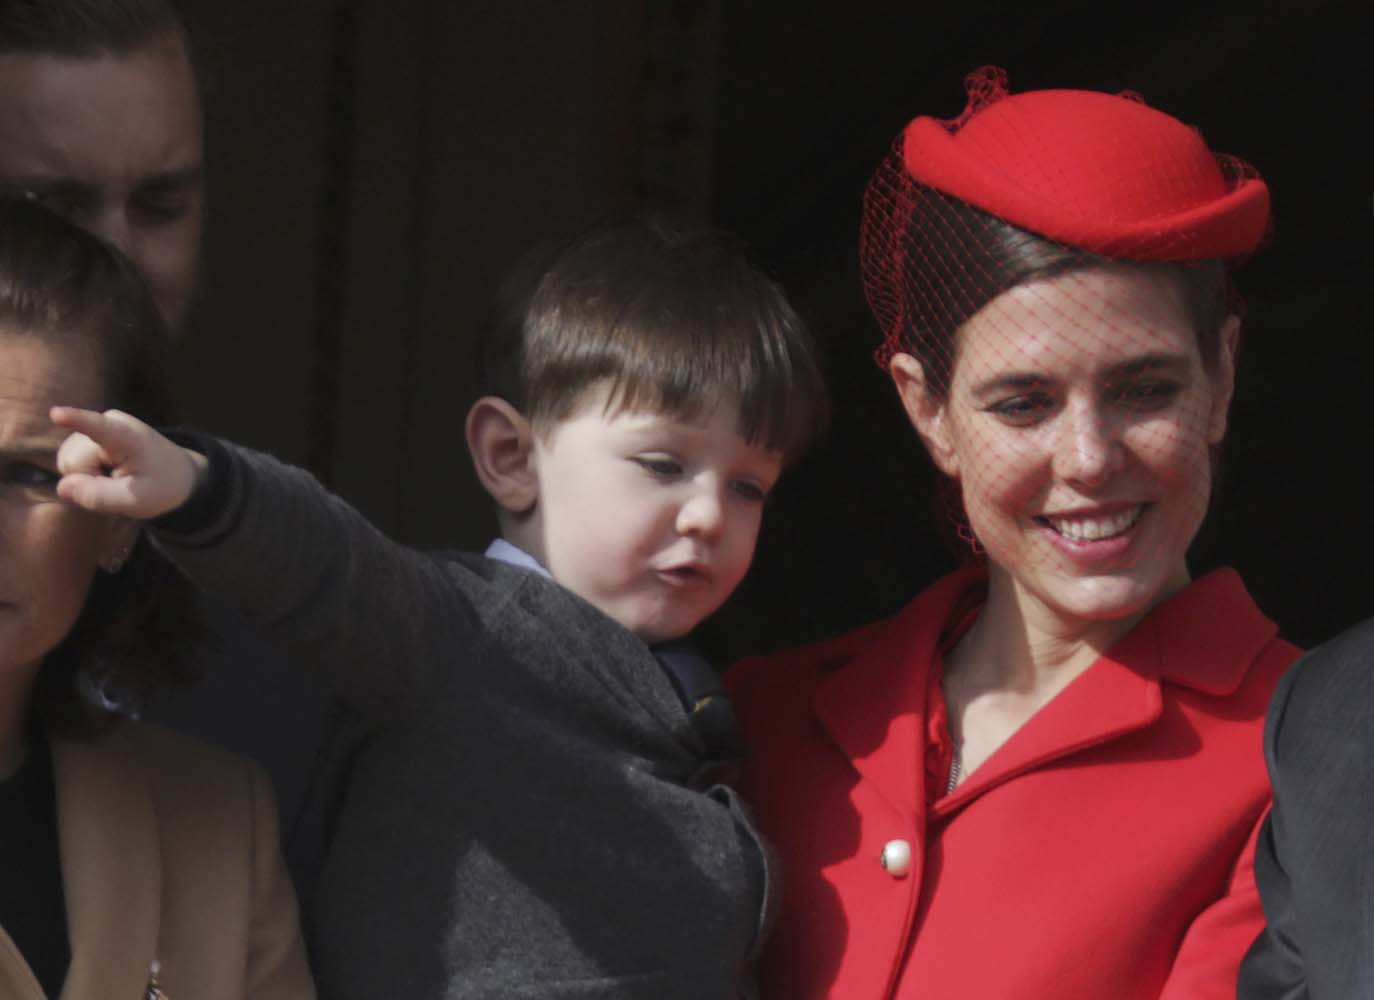 Charlotte Casiraghi and her son Raphael stand at the Palace Balcony during Monaco's National Day November 19, 2016. REUTERS/Eric Gaillard